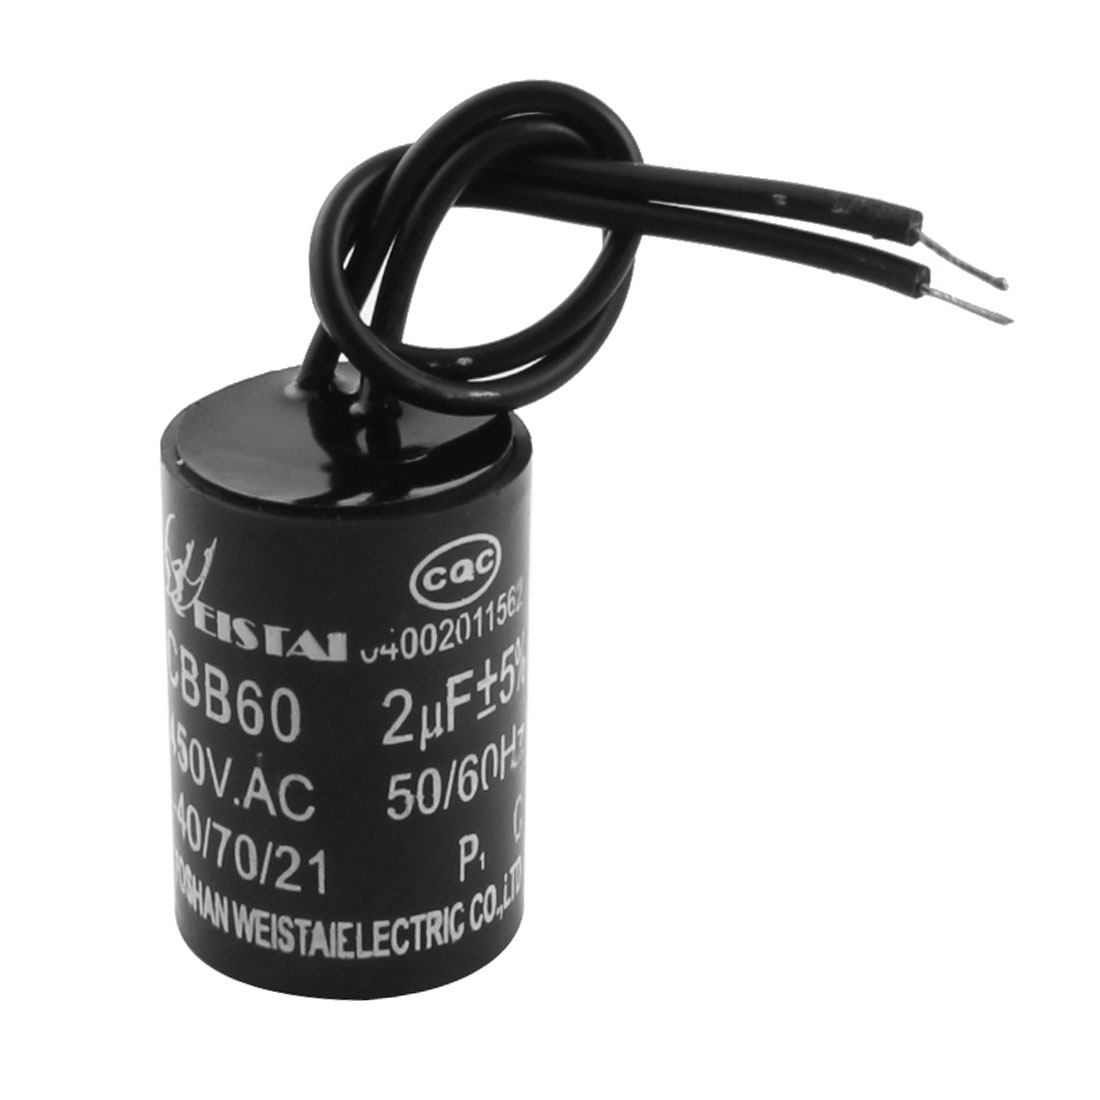 CBB60 2uF AC 450V Polypropylene Film Motor Run Capacitor for Washer